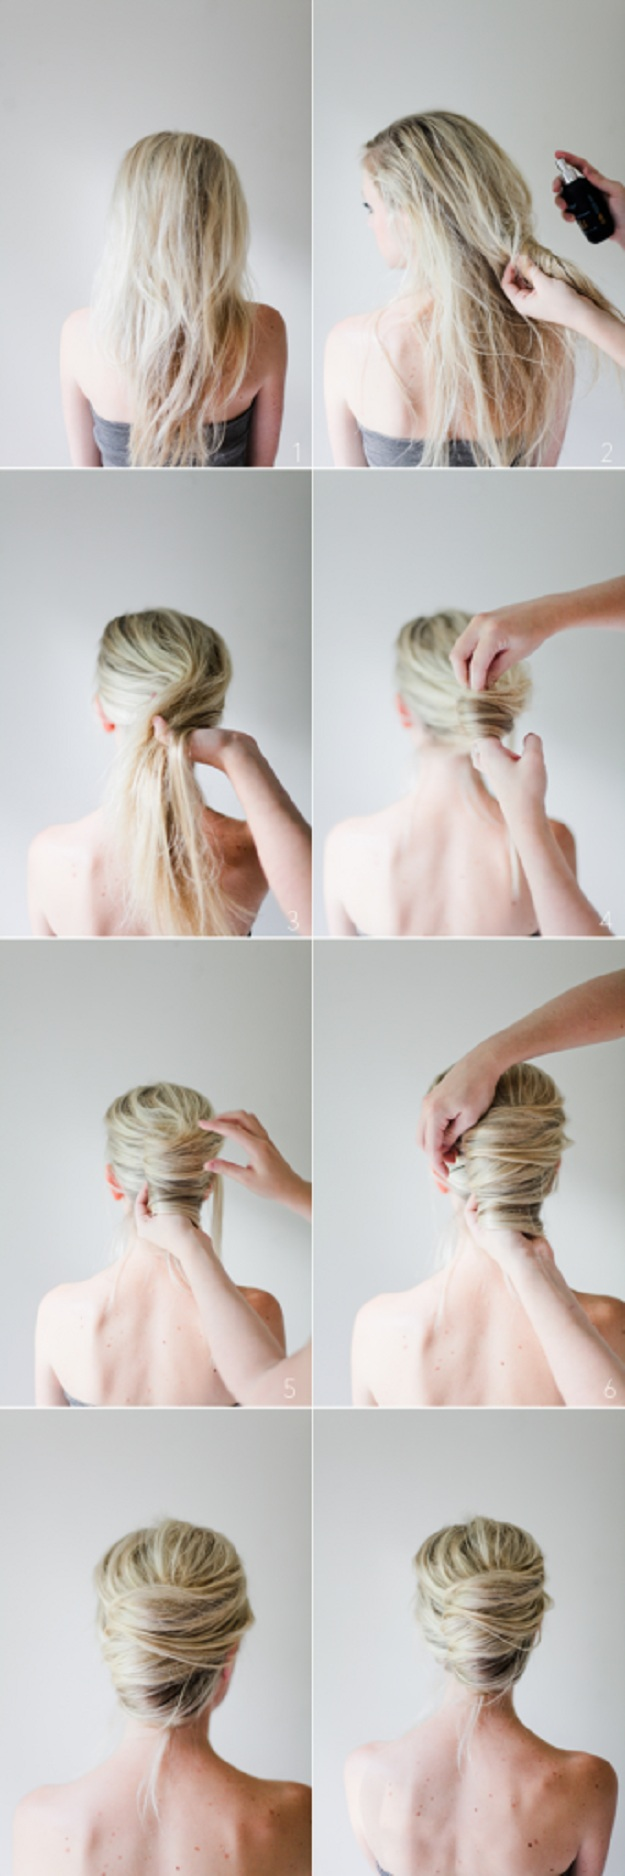 32 Chic 5-Minute Hairstyles Tutorials You May Love | Styles Weekly